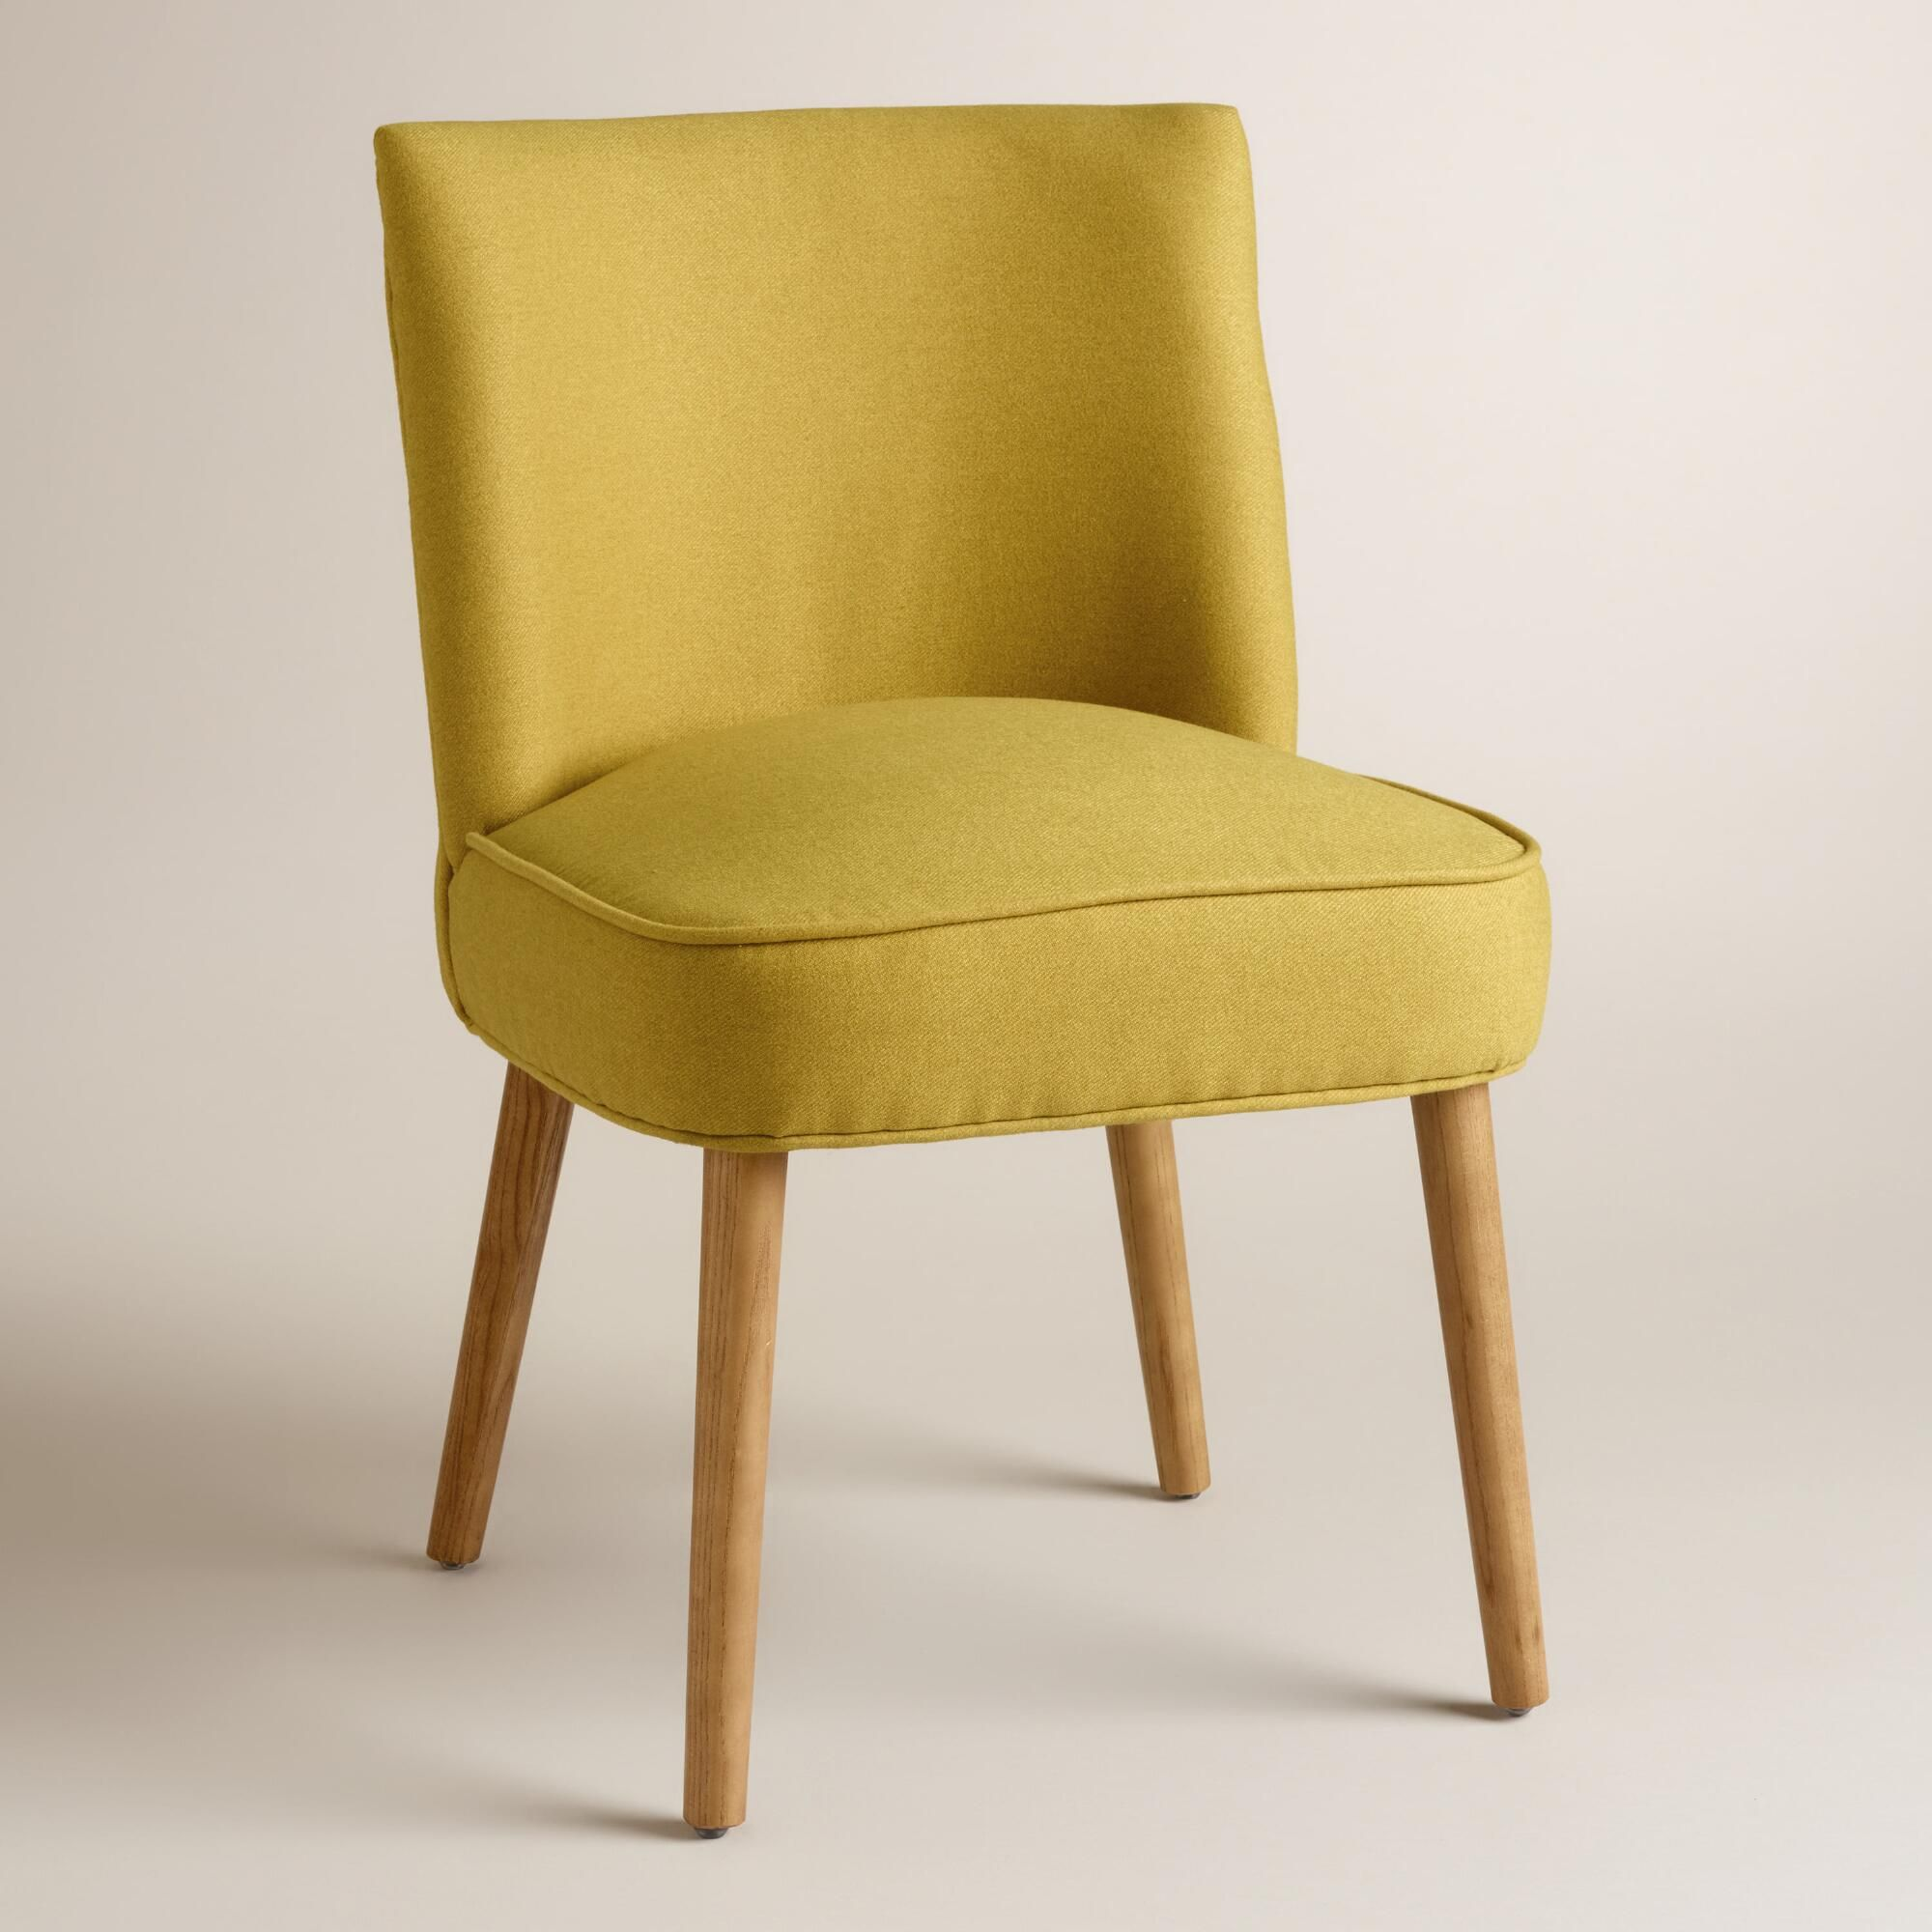 Comfortable Kitchen Chairs: A Low Profile, Tapered Ash Wood Legs And Piping Details